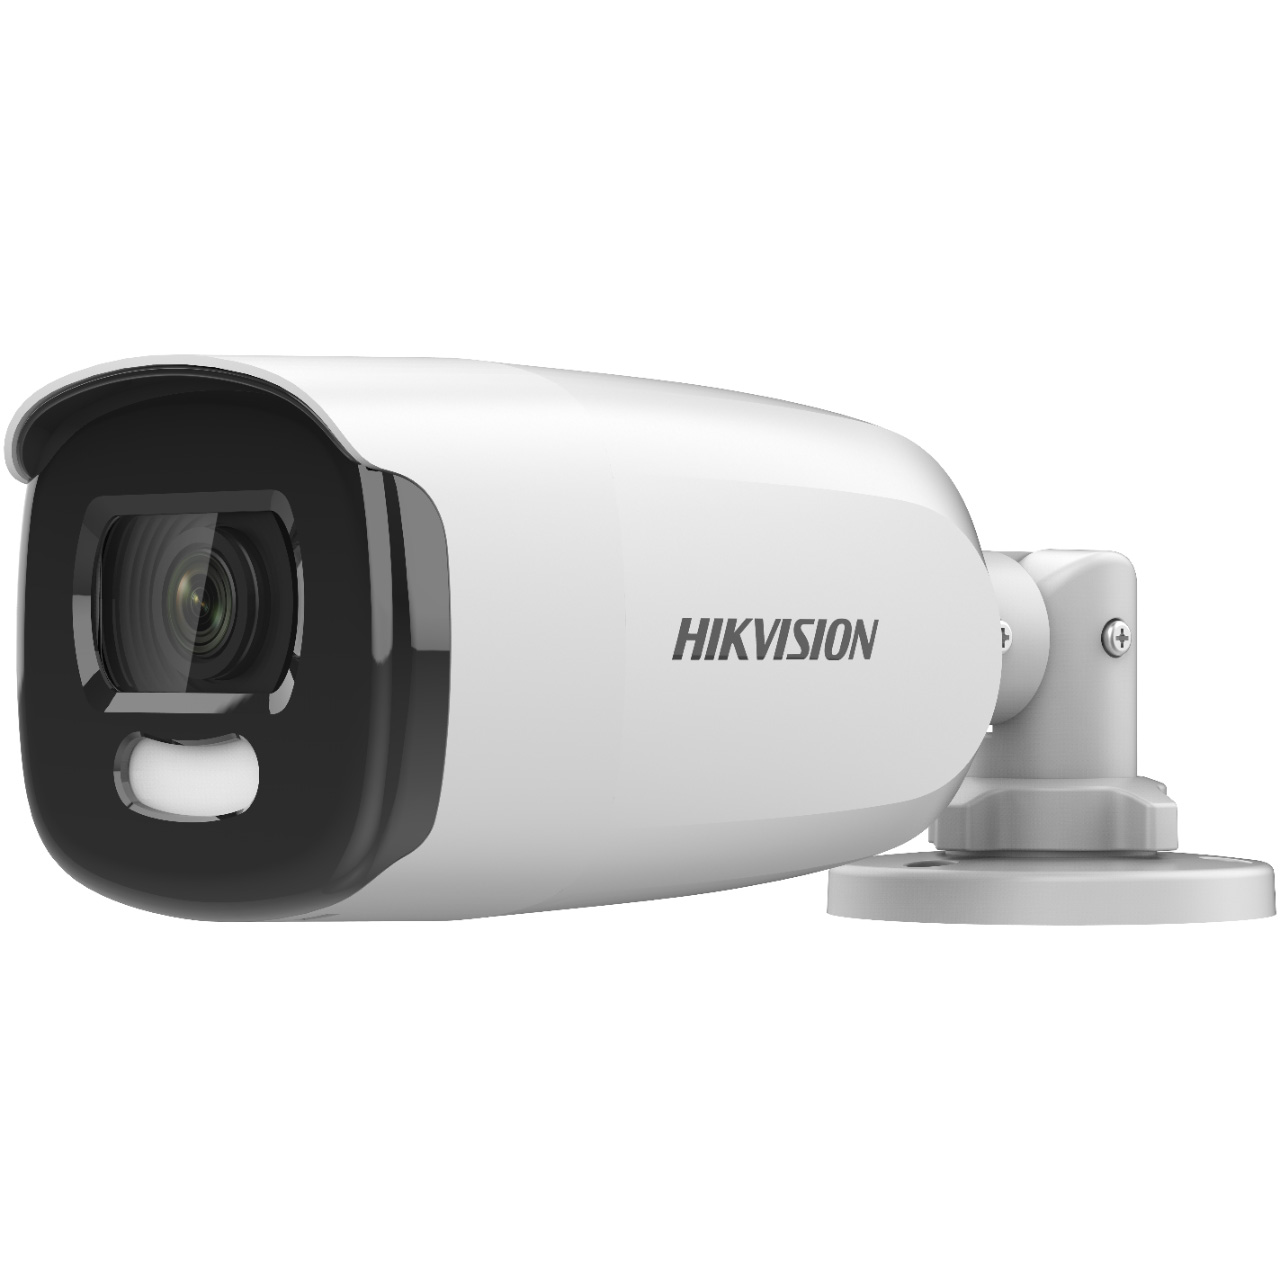 Hikvision DS-2CE12HFT-F(3.6mm)